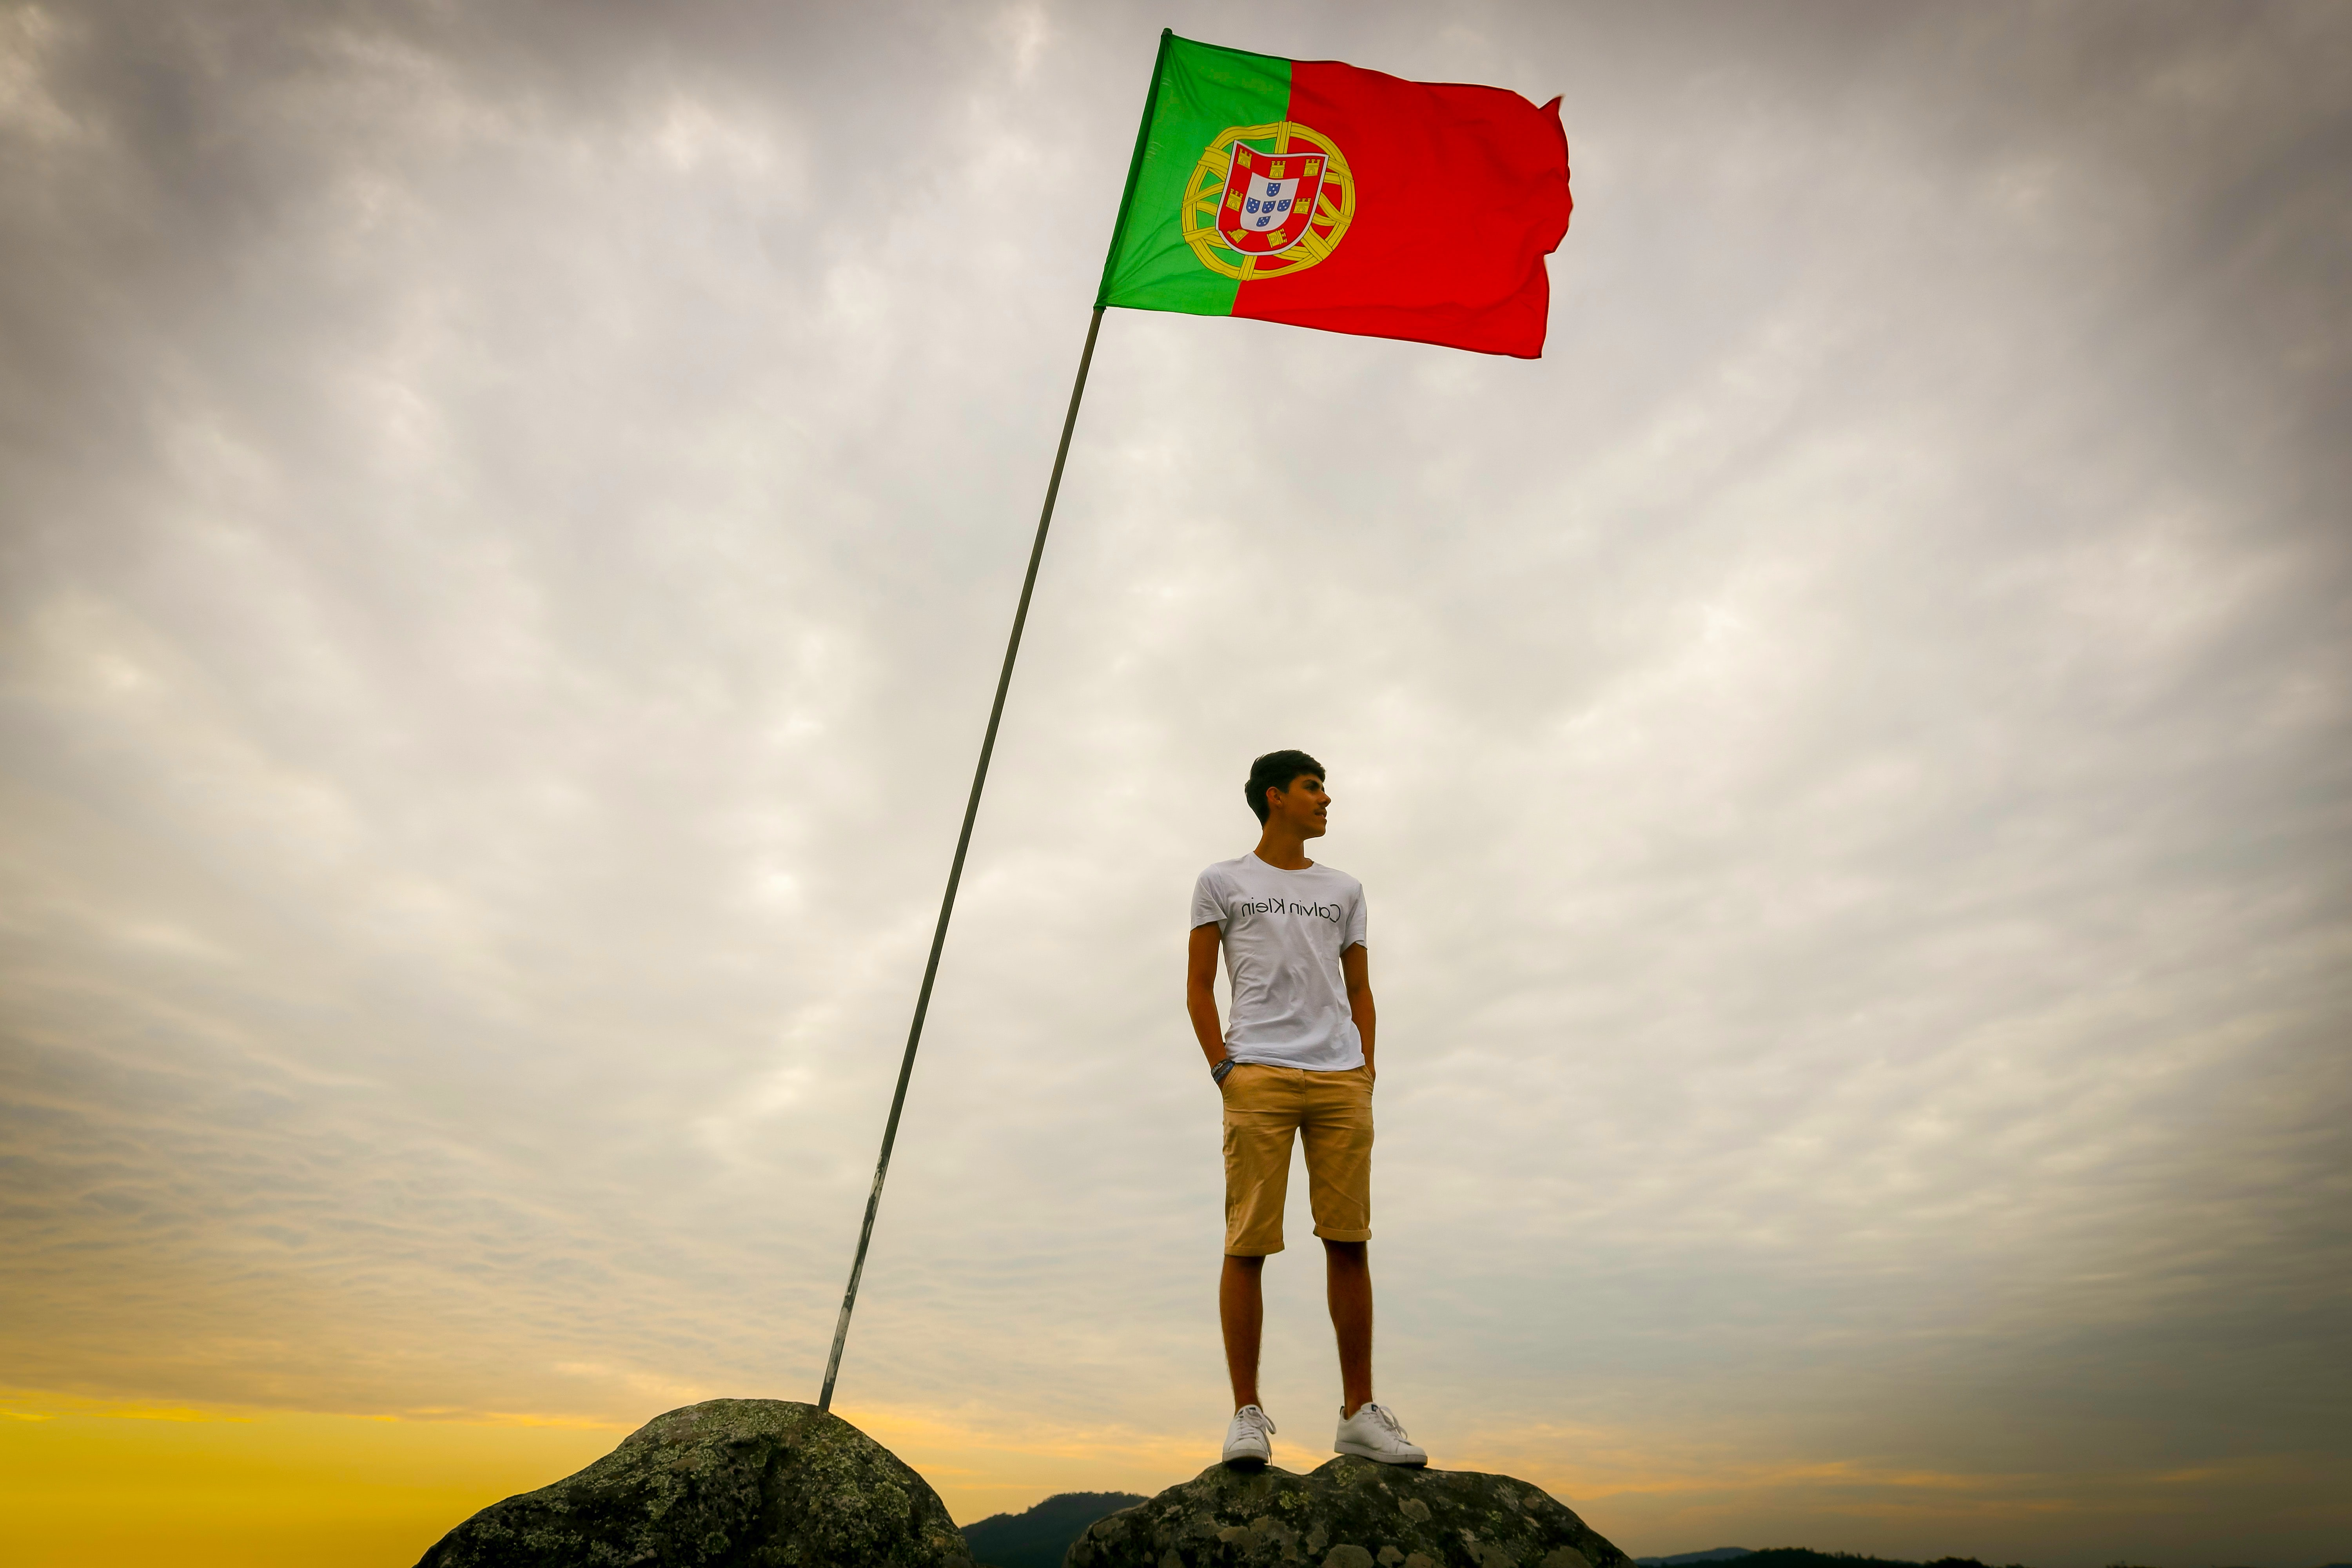 A guy and a Portugal flag